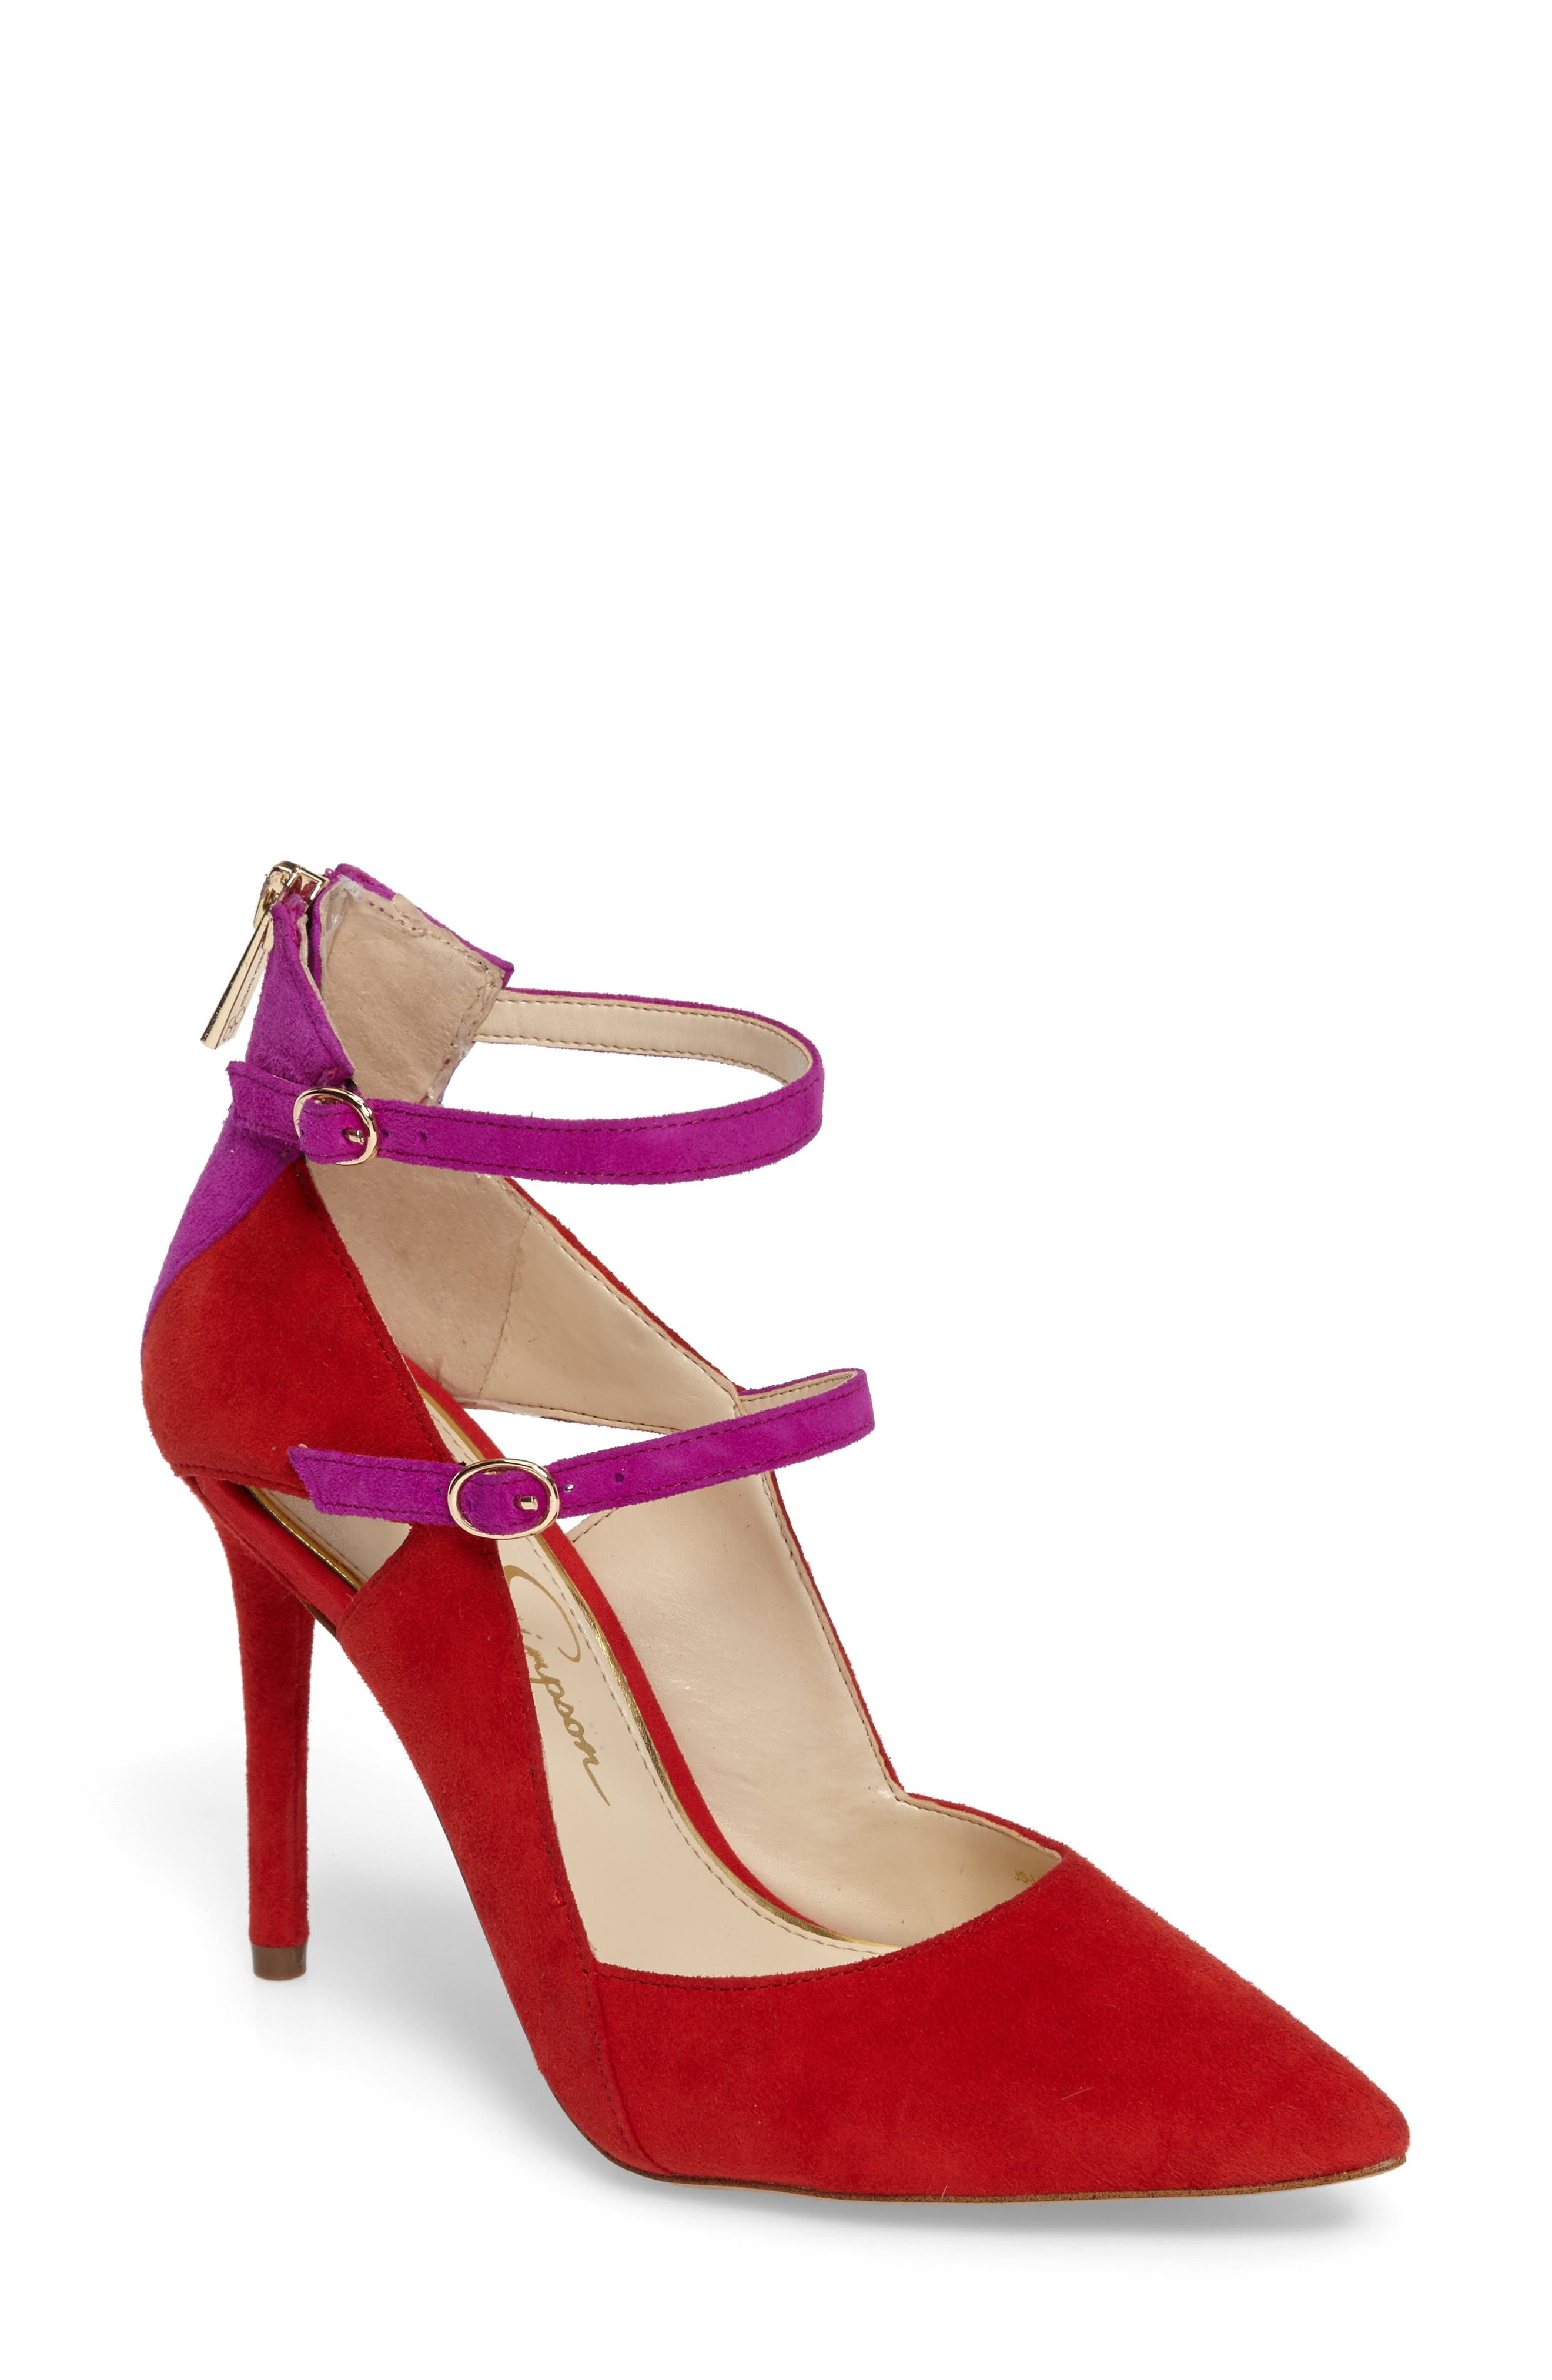 Alternate Image 1 Selected - Jessica Simpson Liviana Pointy-Toe Pump (Women)